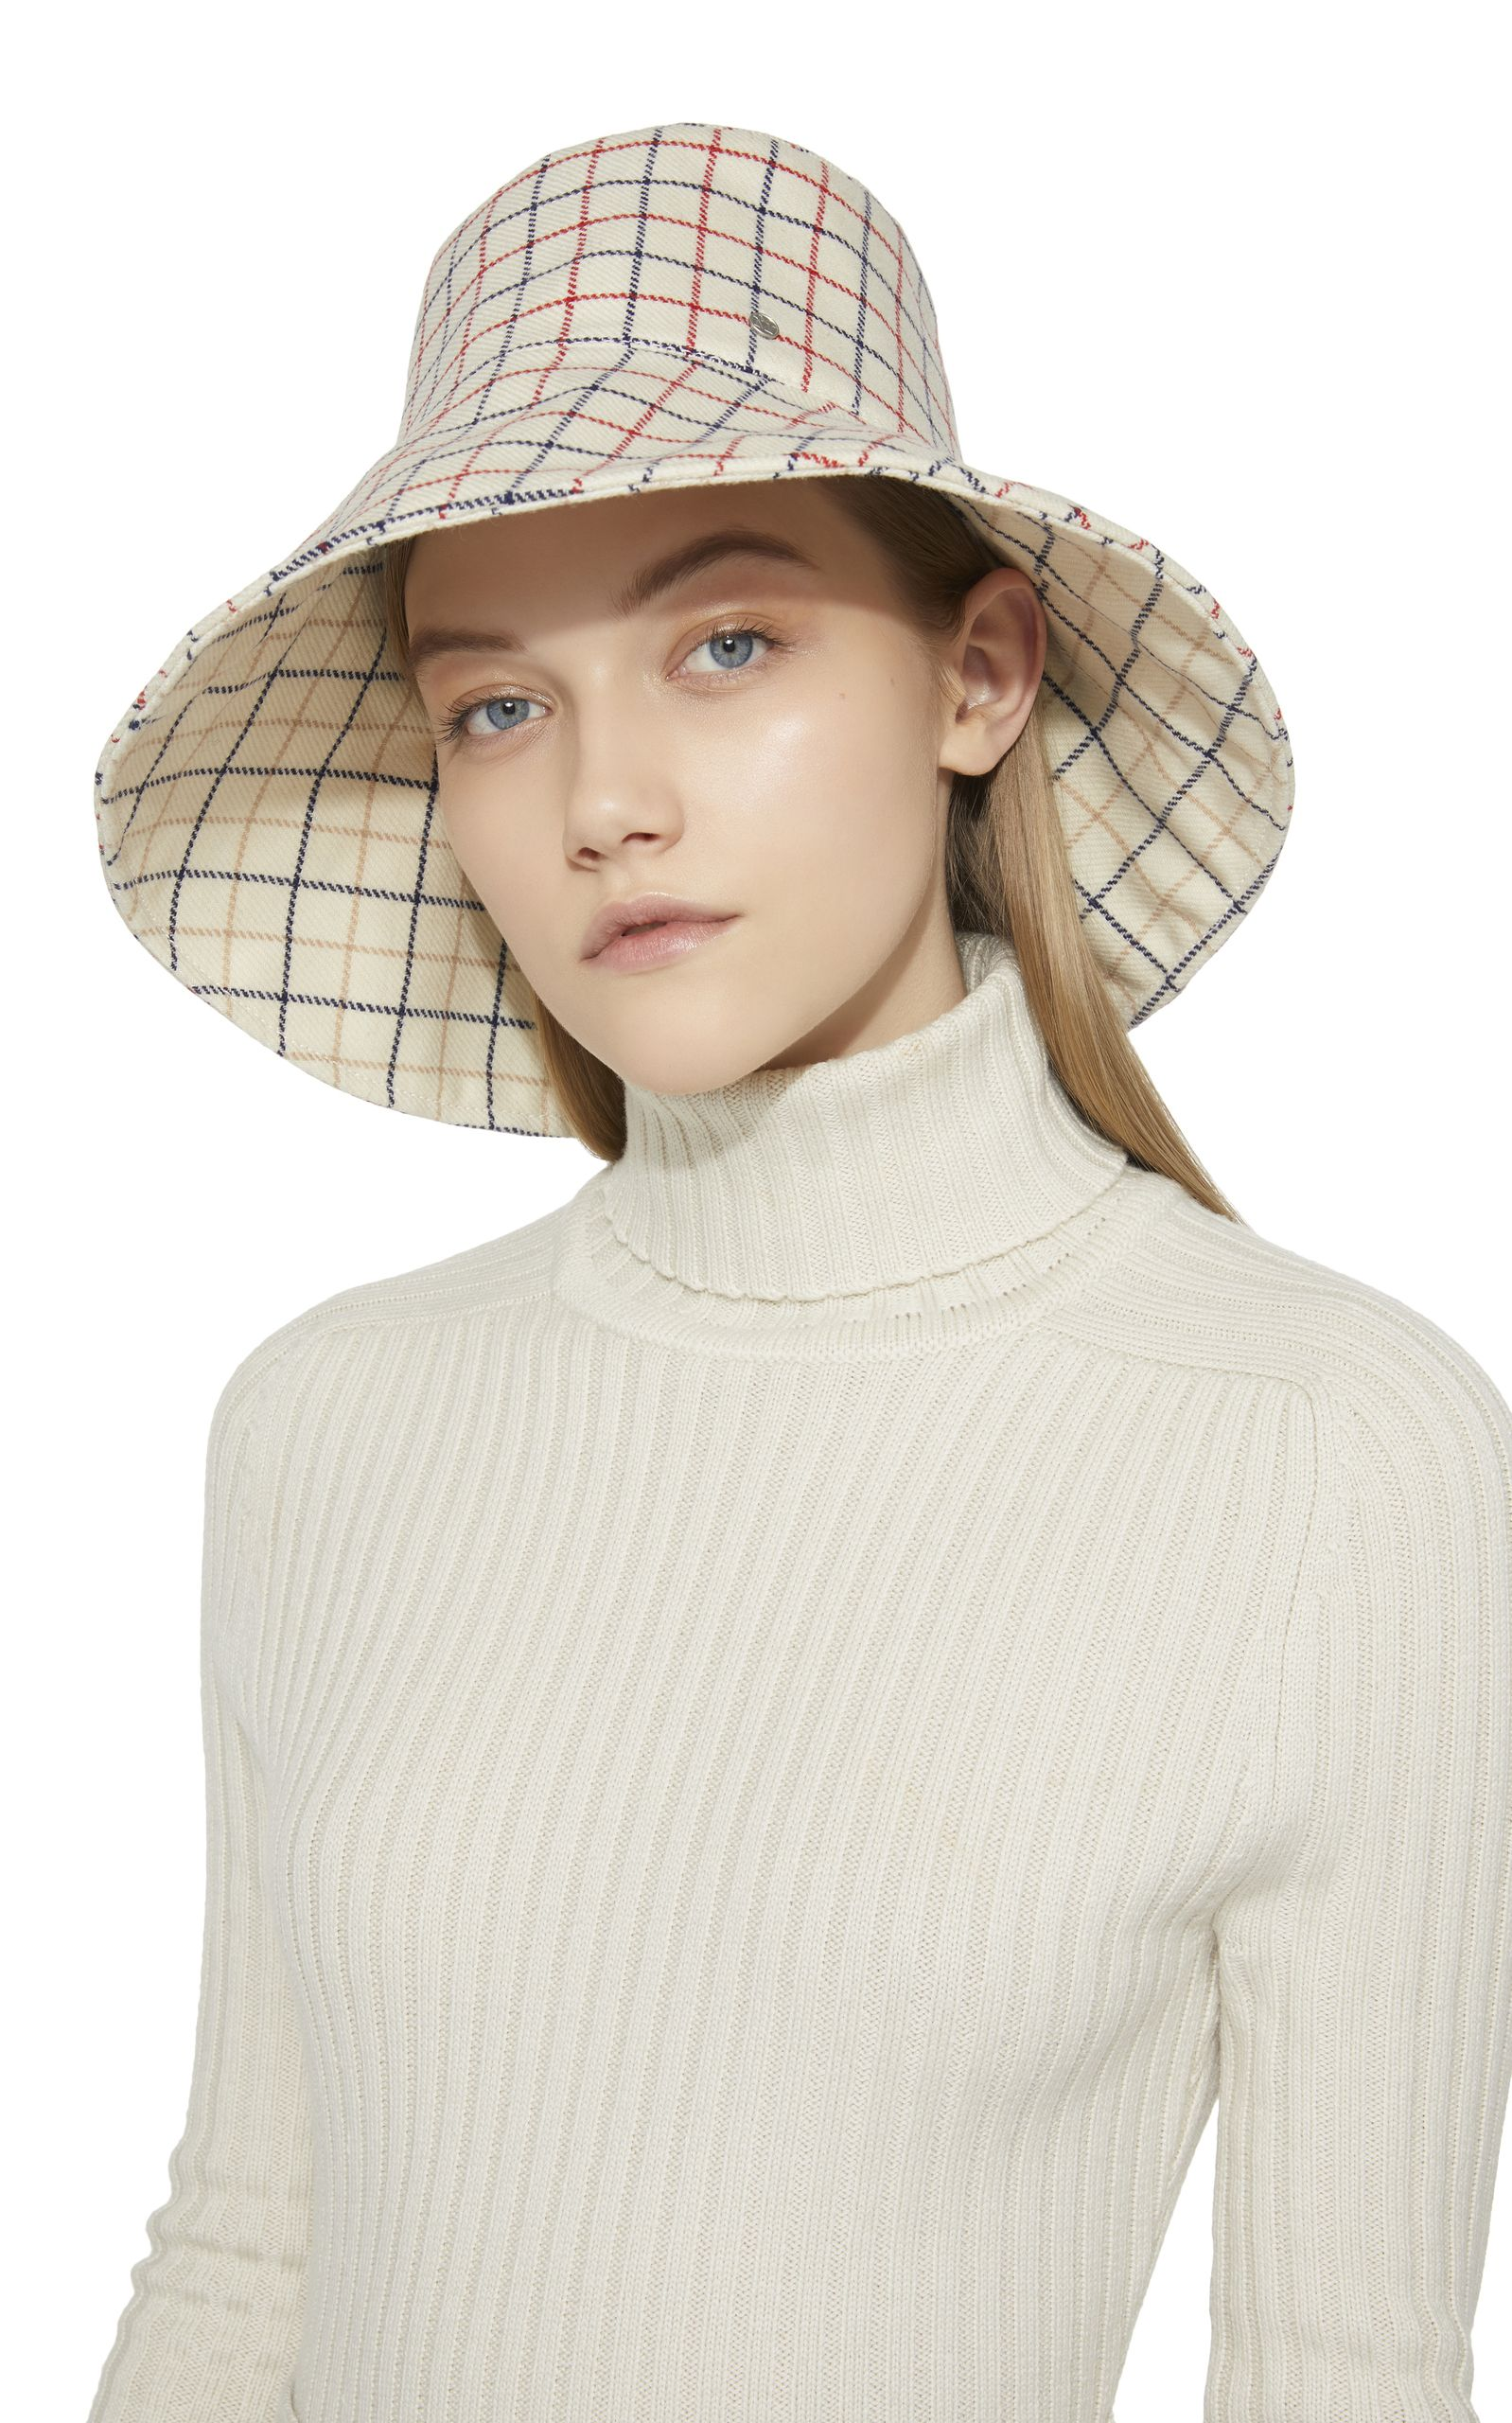 Isabella Checked Wool Bucket Hat  a39b6935c519